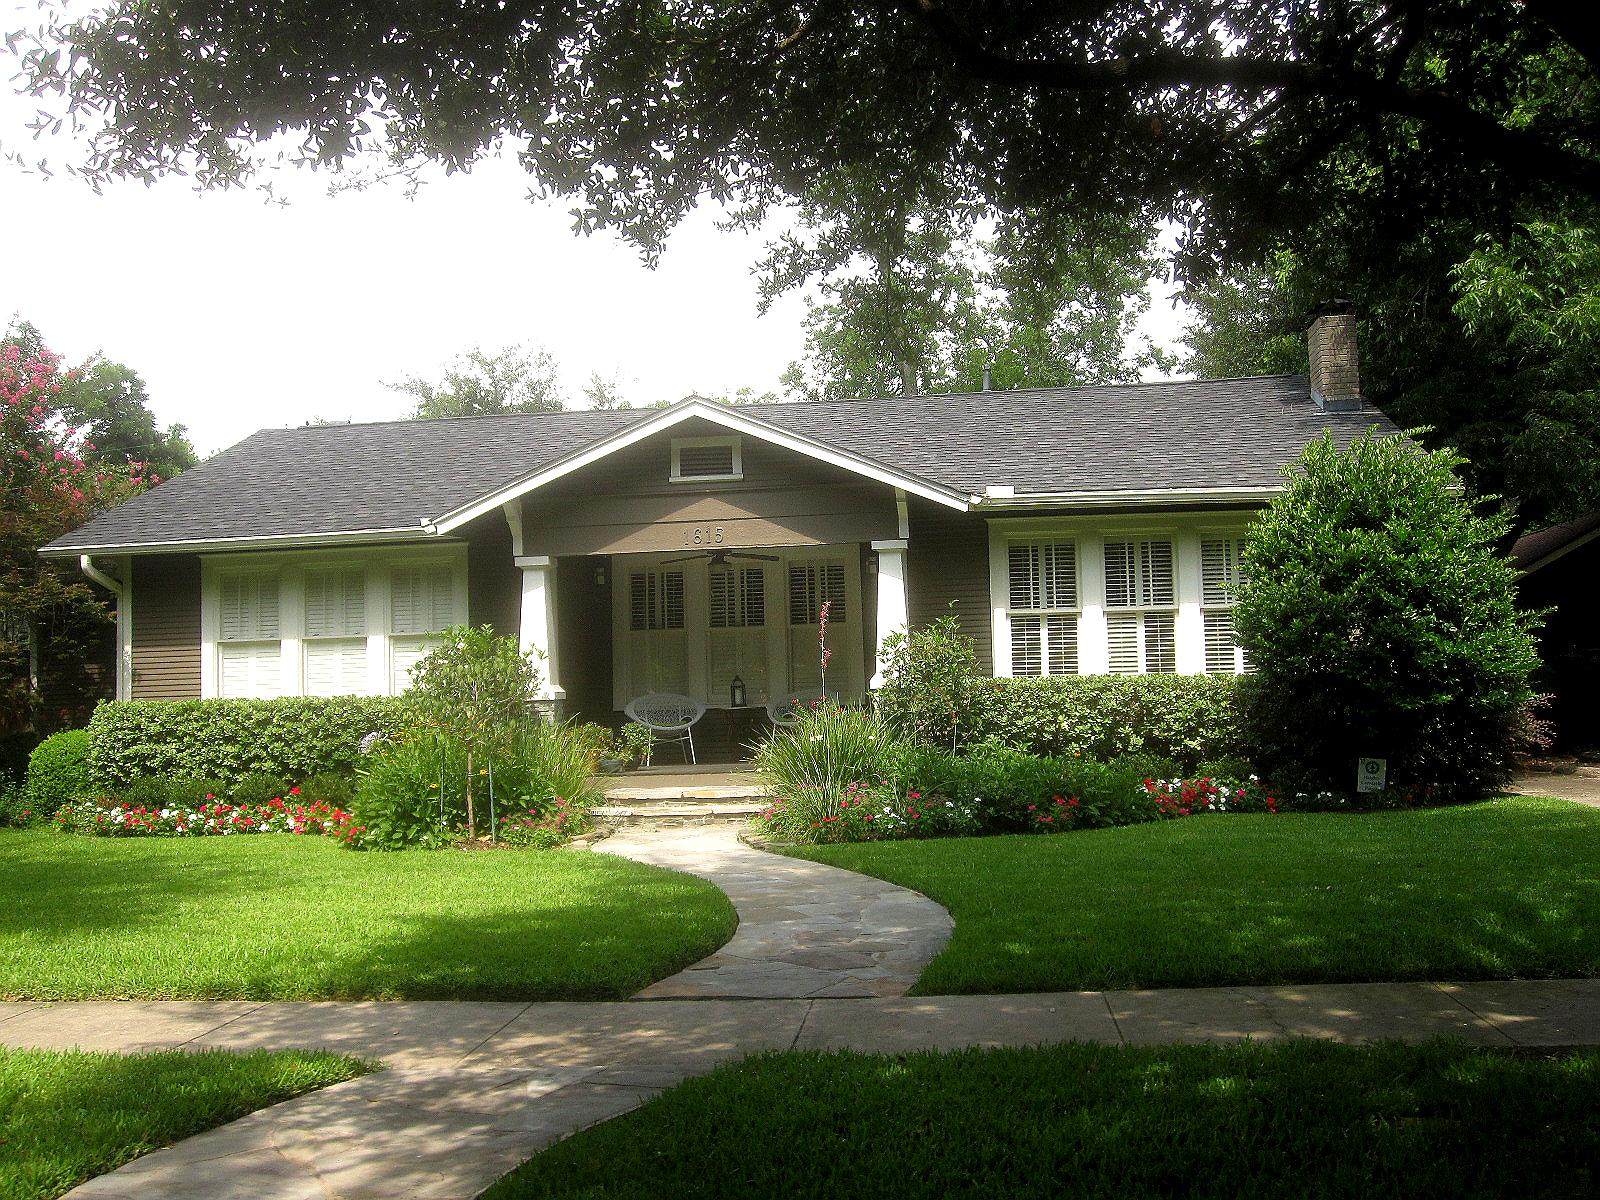 Houston Bungalow Front Yard Garden Idea Best Landscaping Ideas For Front House